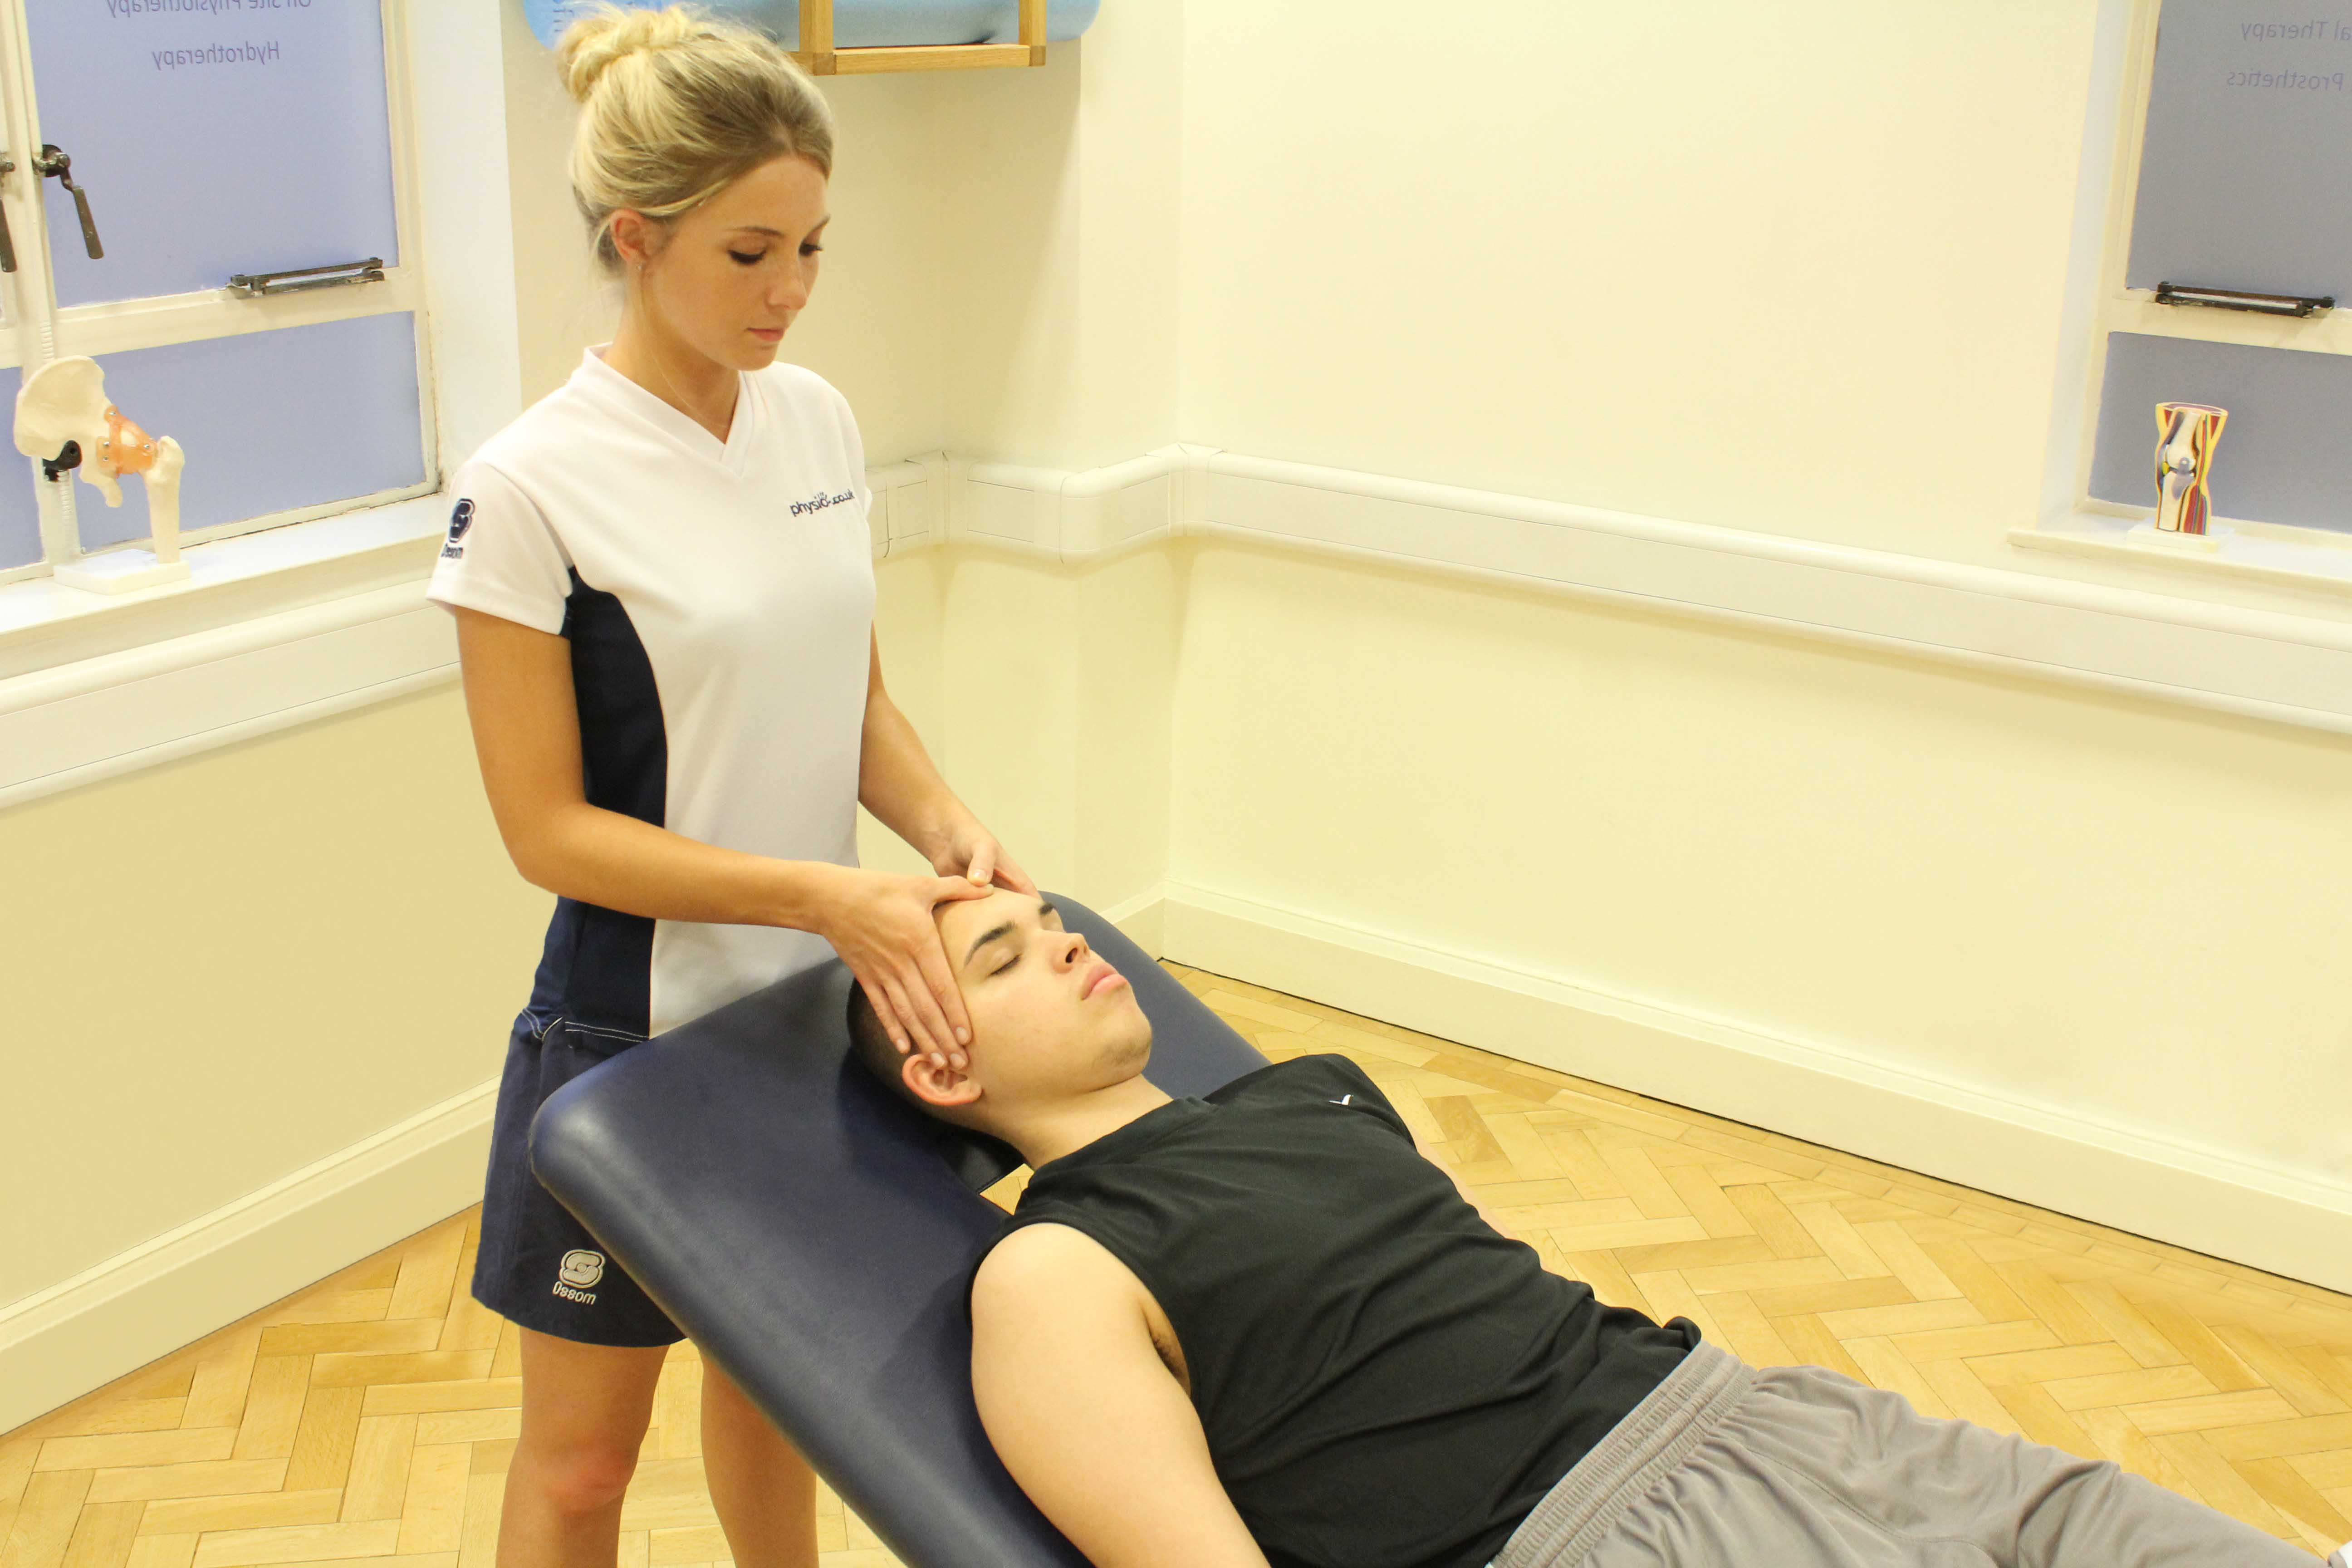 Soft tissue massage of head and face to releive stiffness and stimulate neurological repair